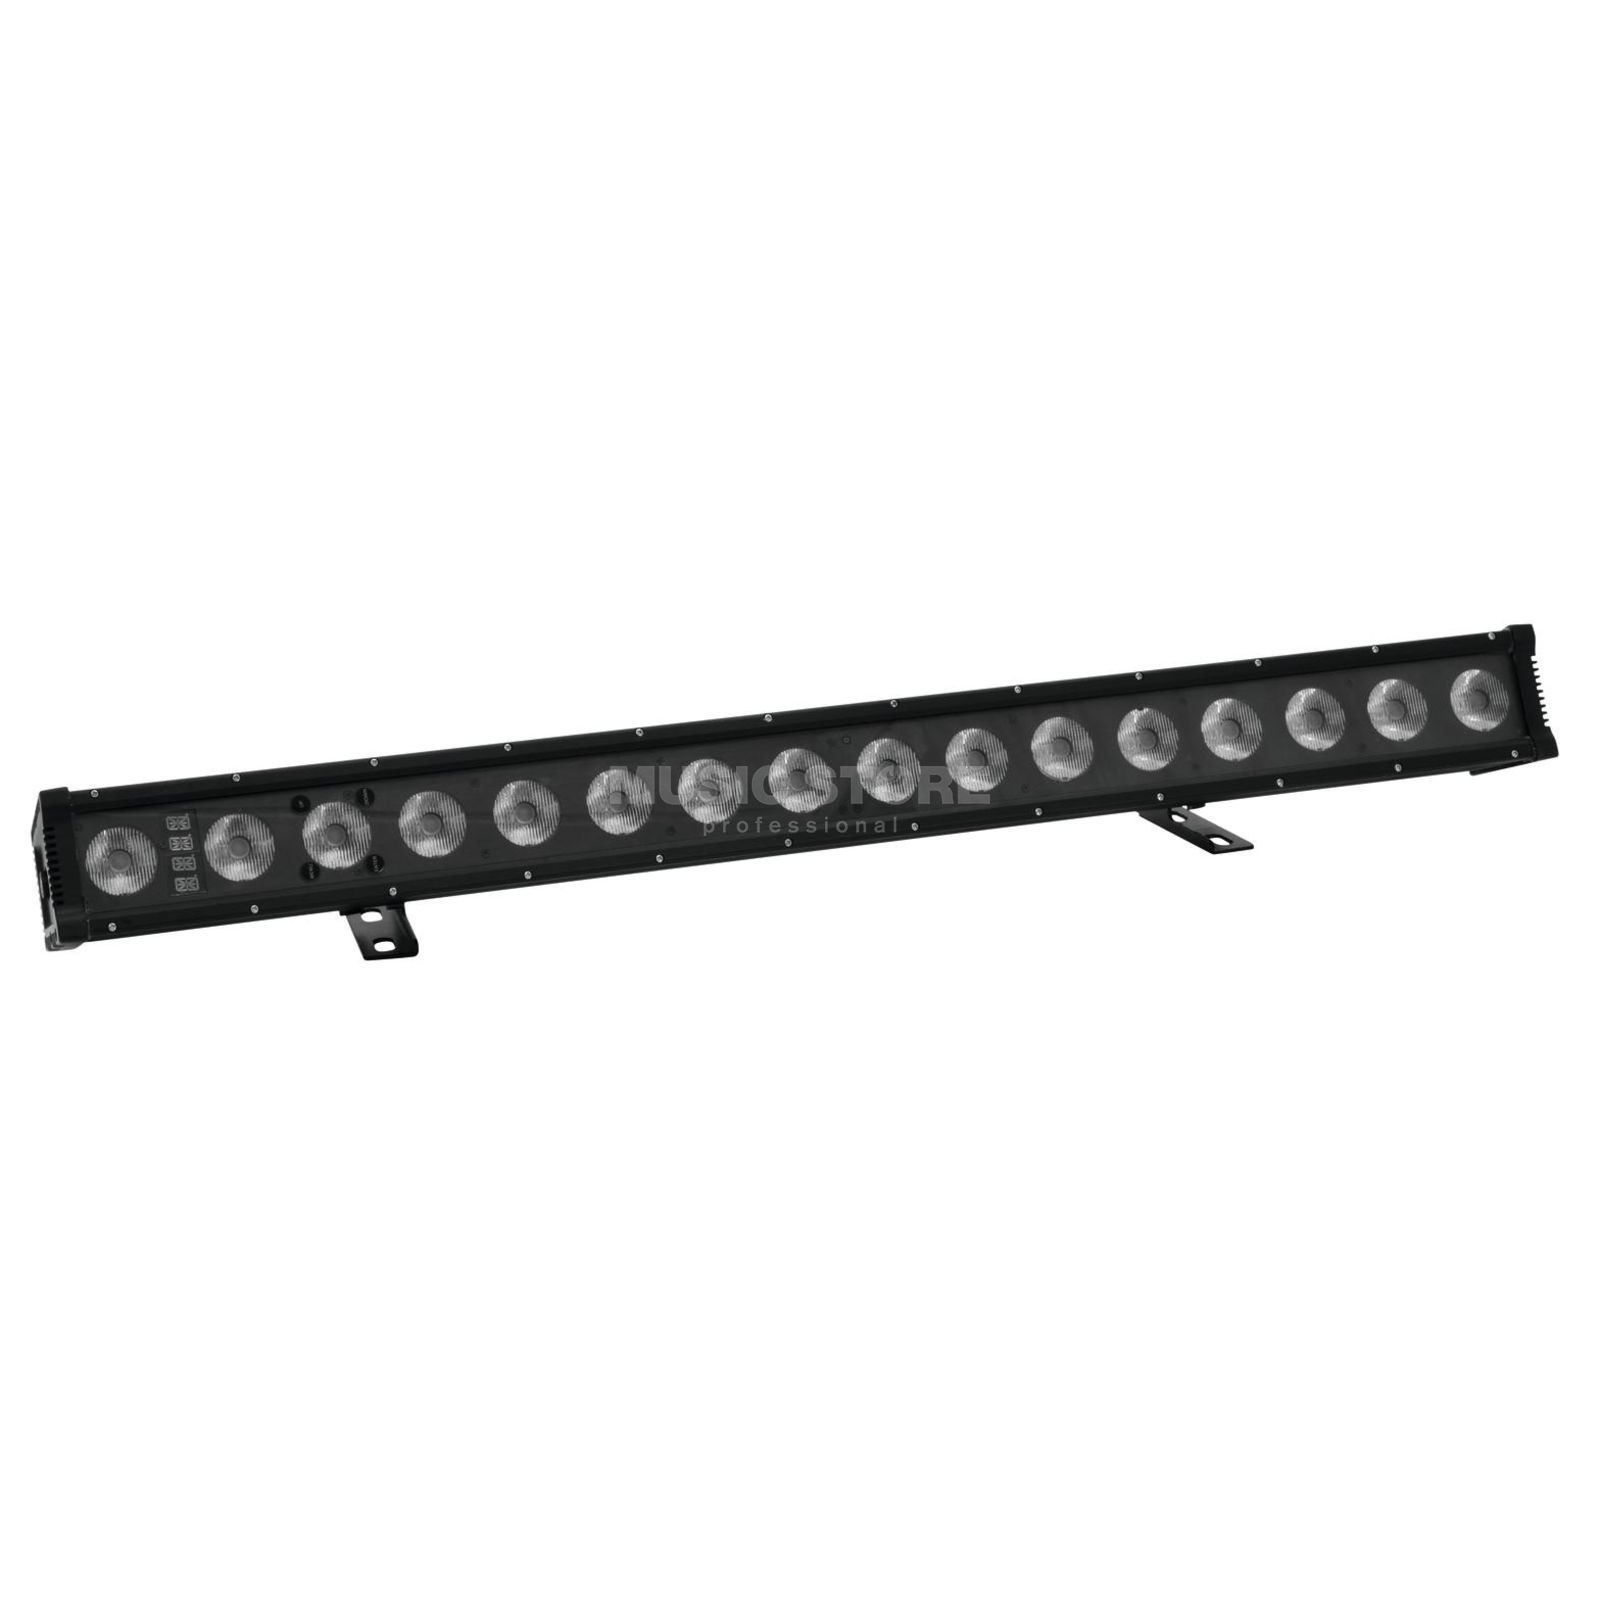 Eurolite LED IP T2000 QCL Leiste IP65 16x10W CREE RGBW Produktbillede